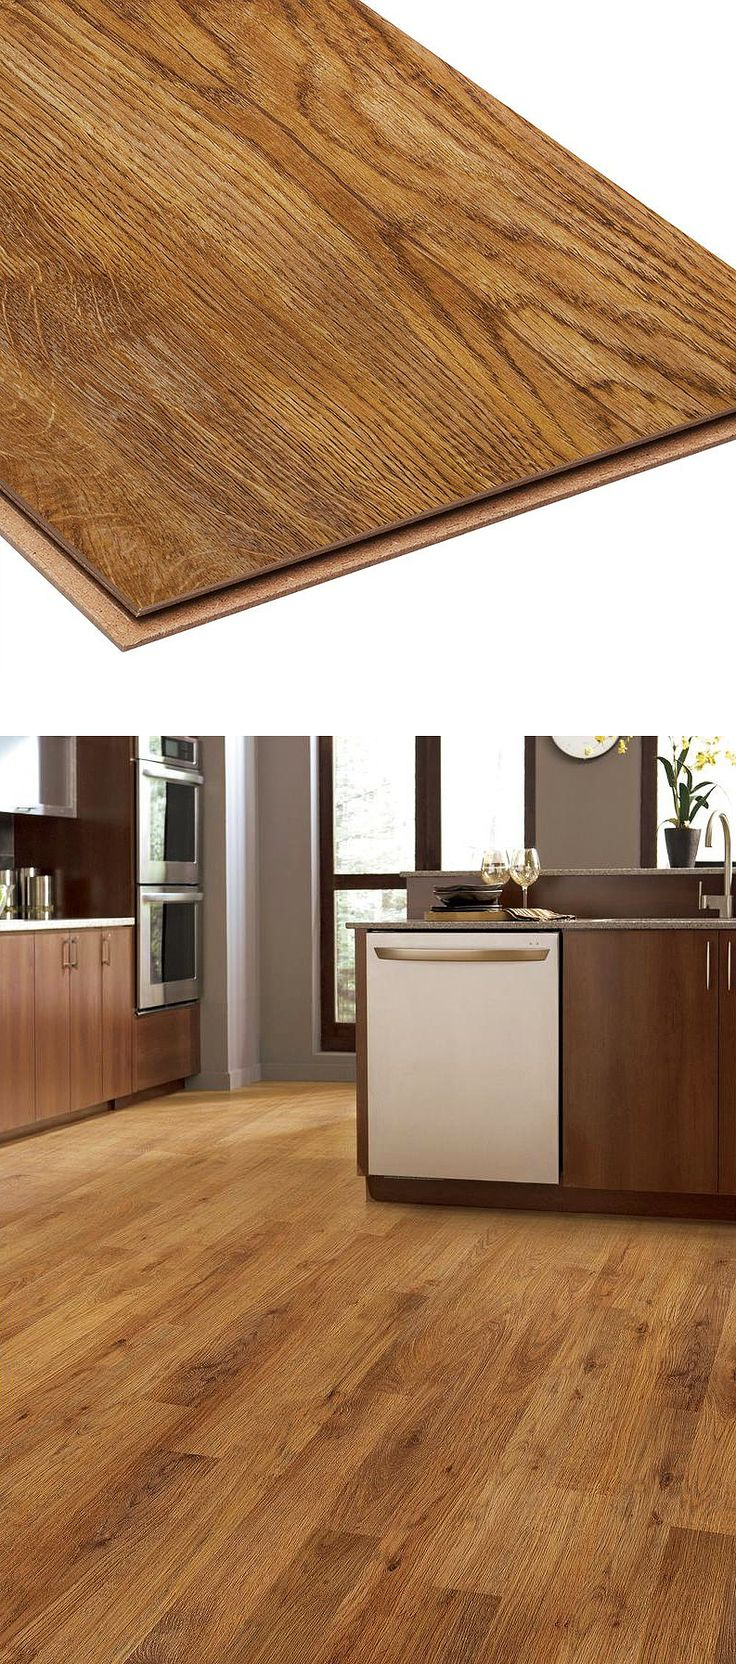 laminate flooring is a great way to give your kitchen the rich look of